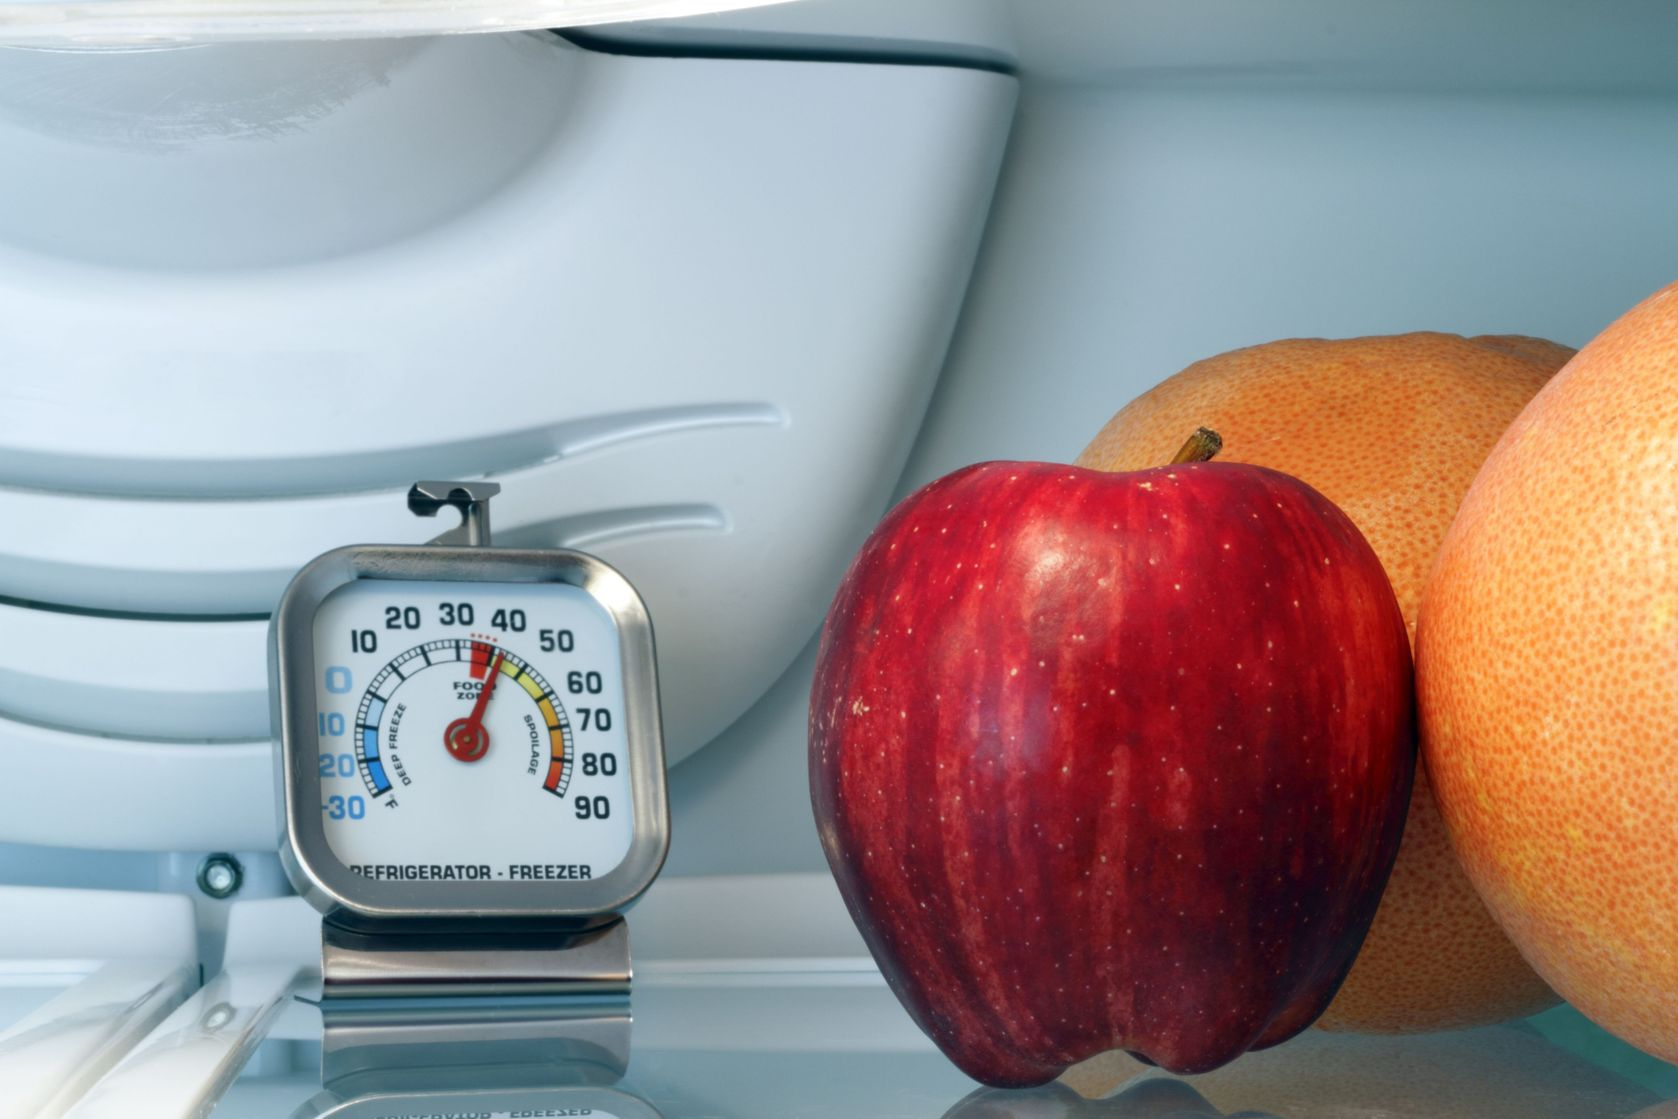 Refrigerator not cooling? Call the refrigerator repair experts at Kirch Appliance for fast fridge repair.